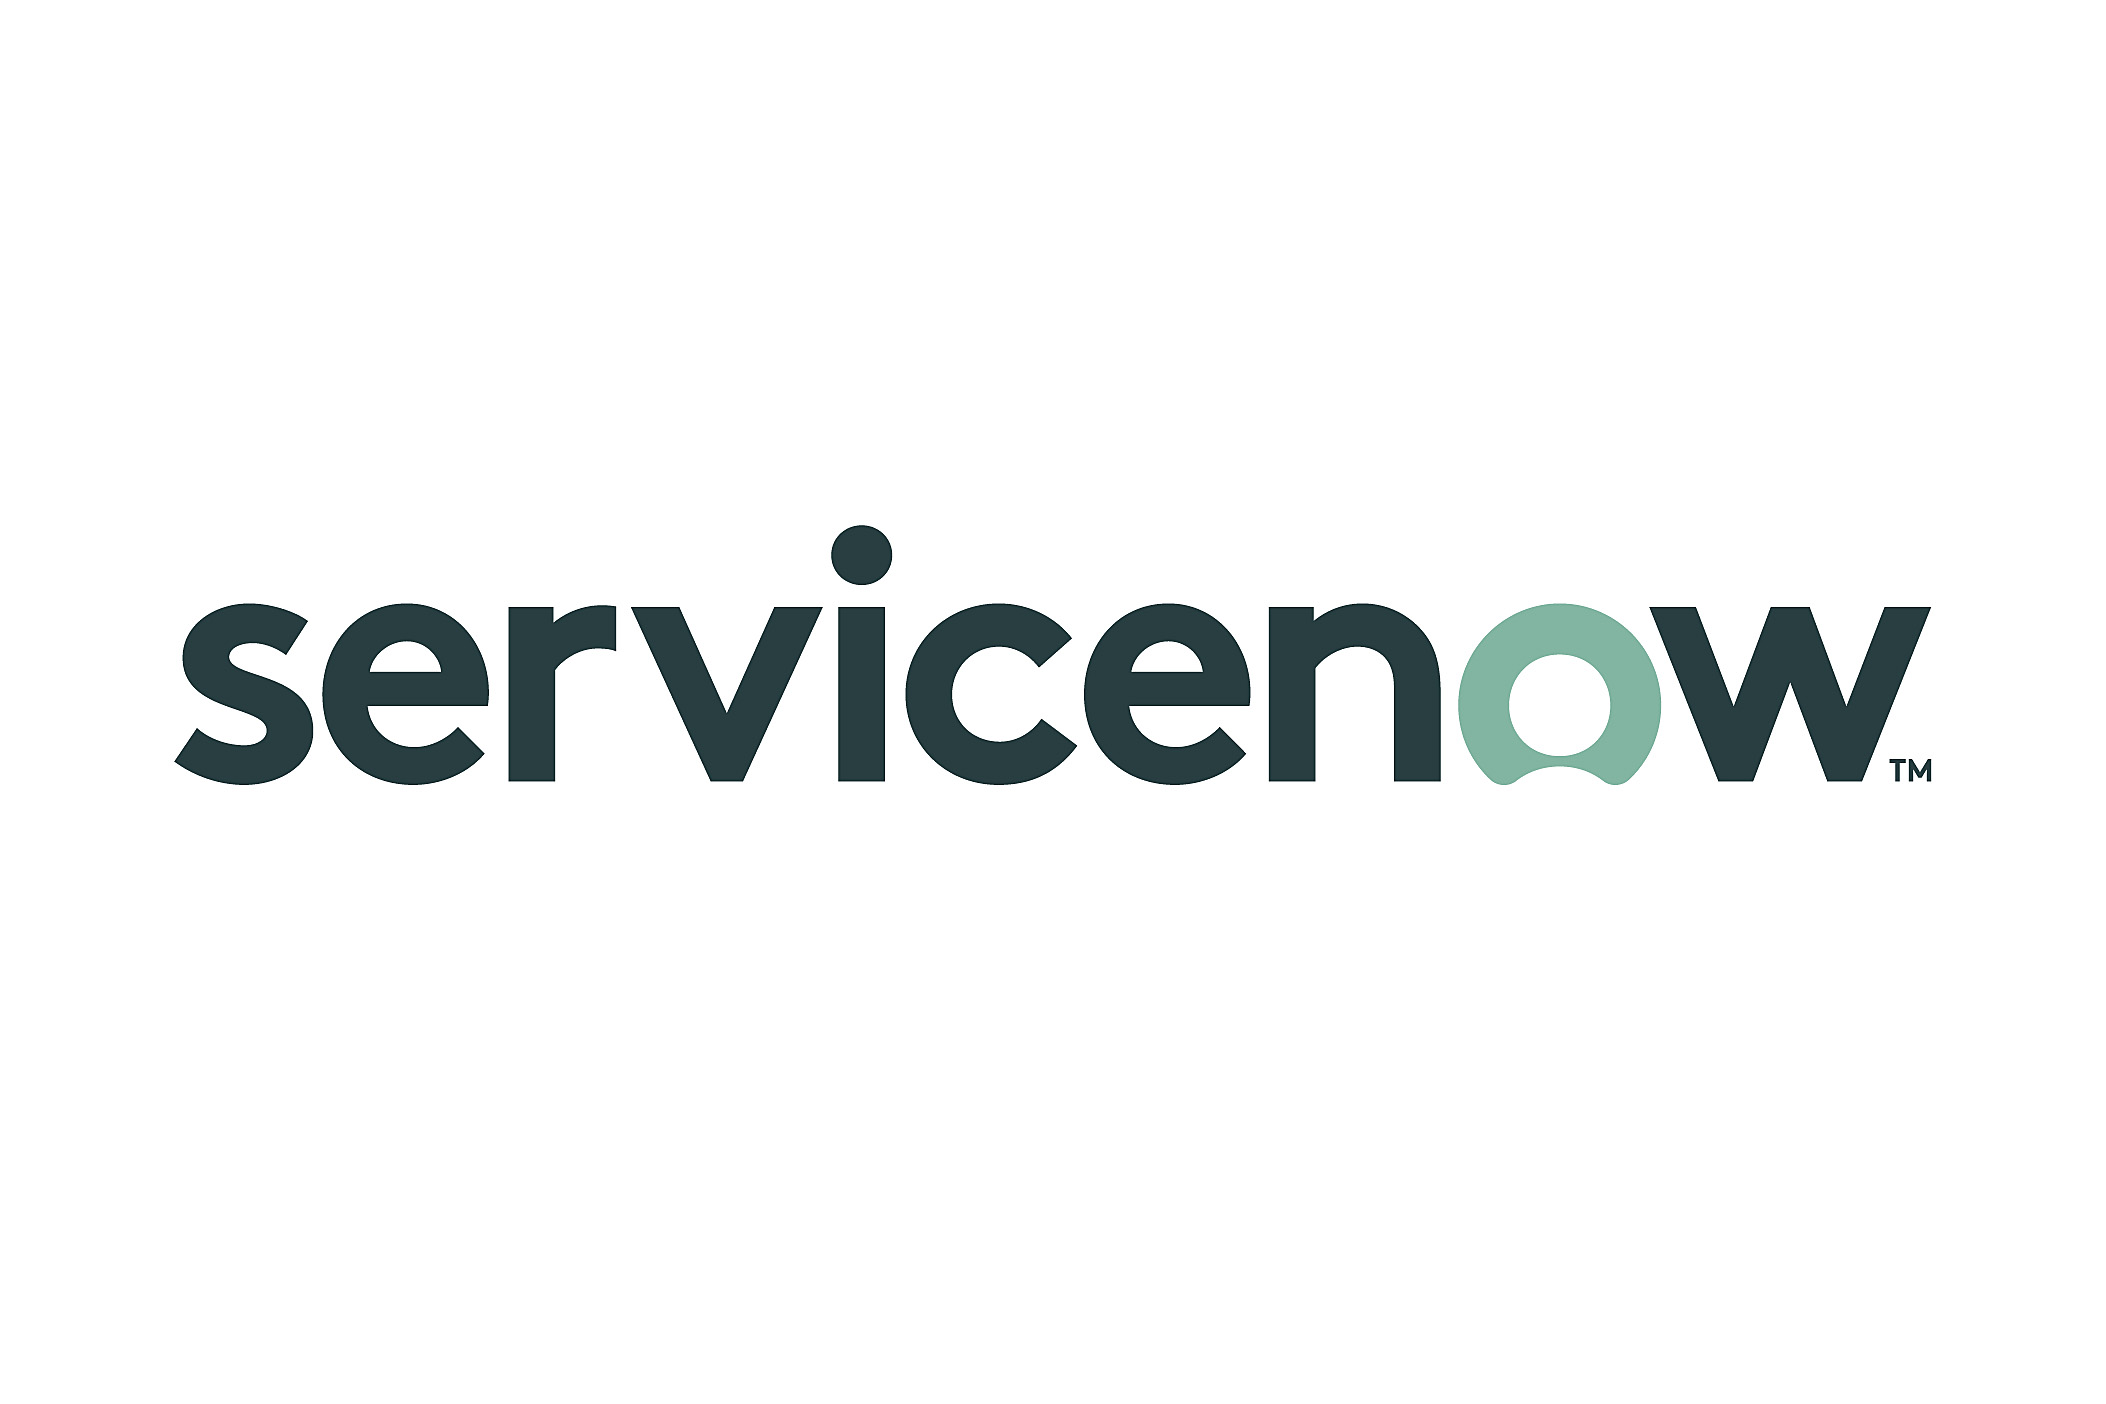 Invictus Becomes a ServiceNow Partner